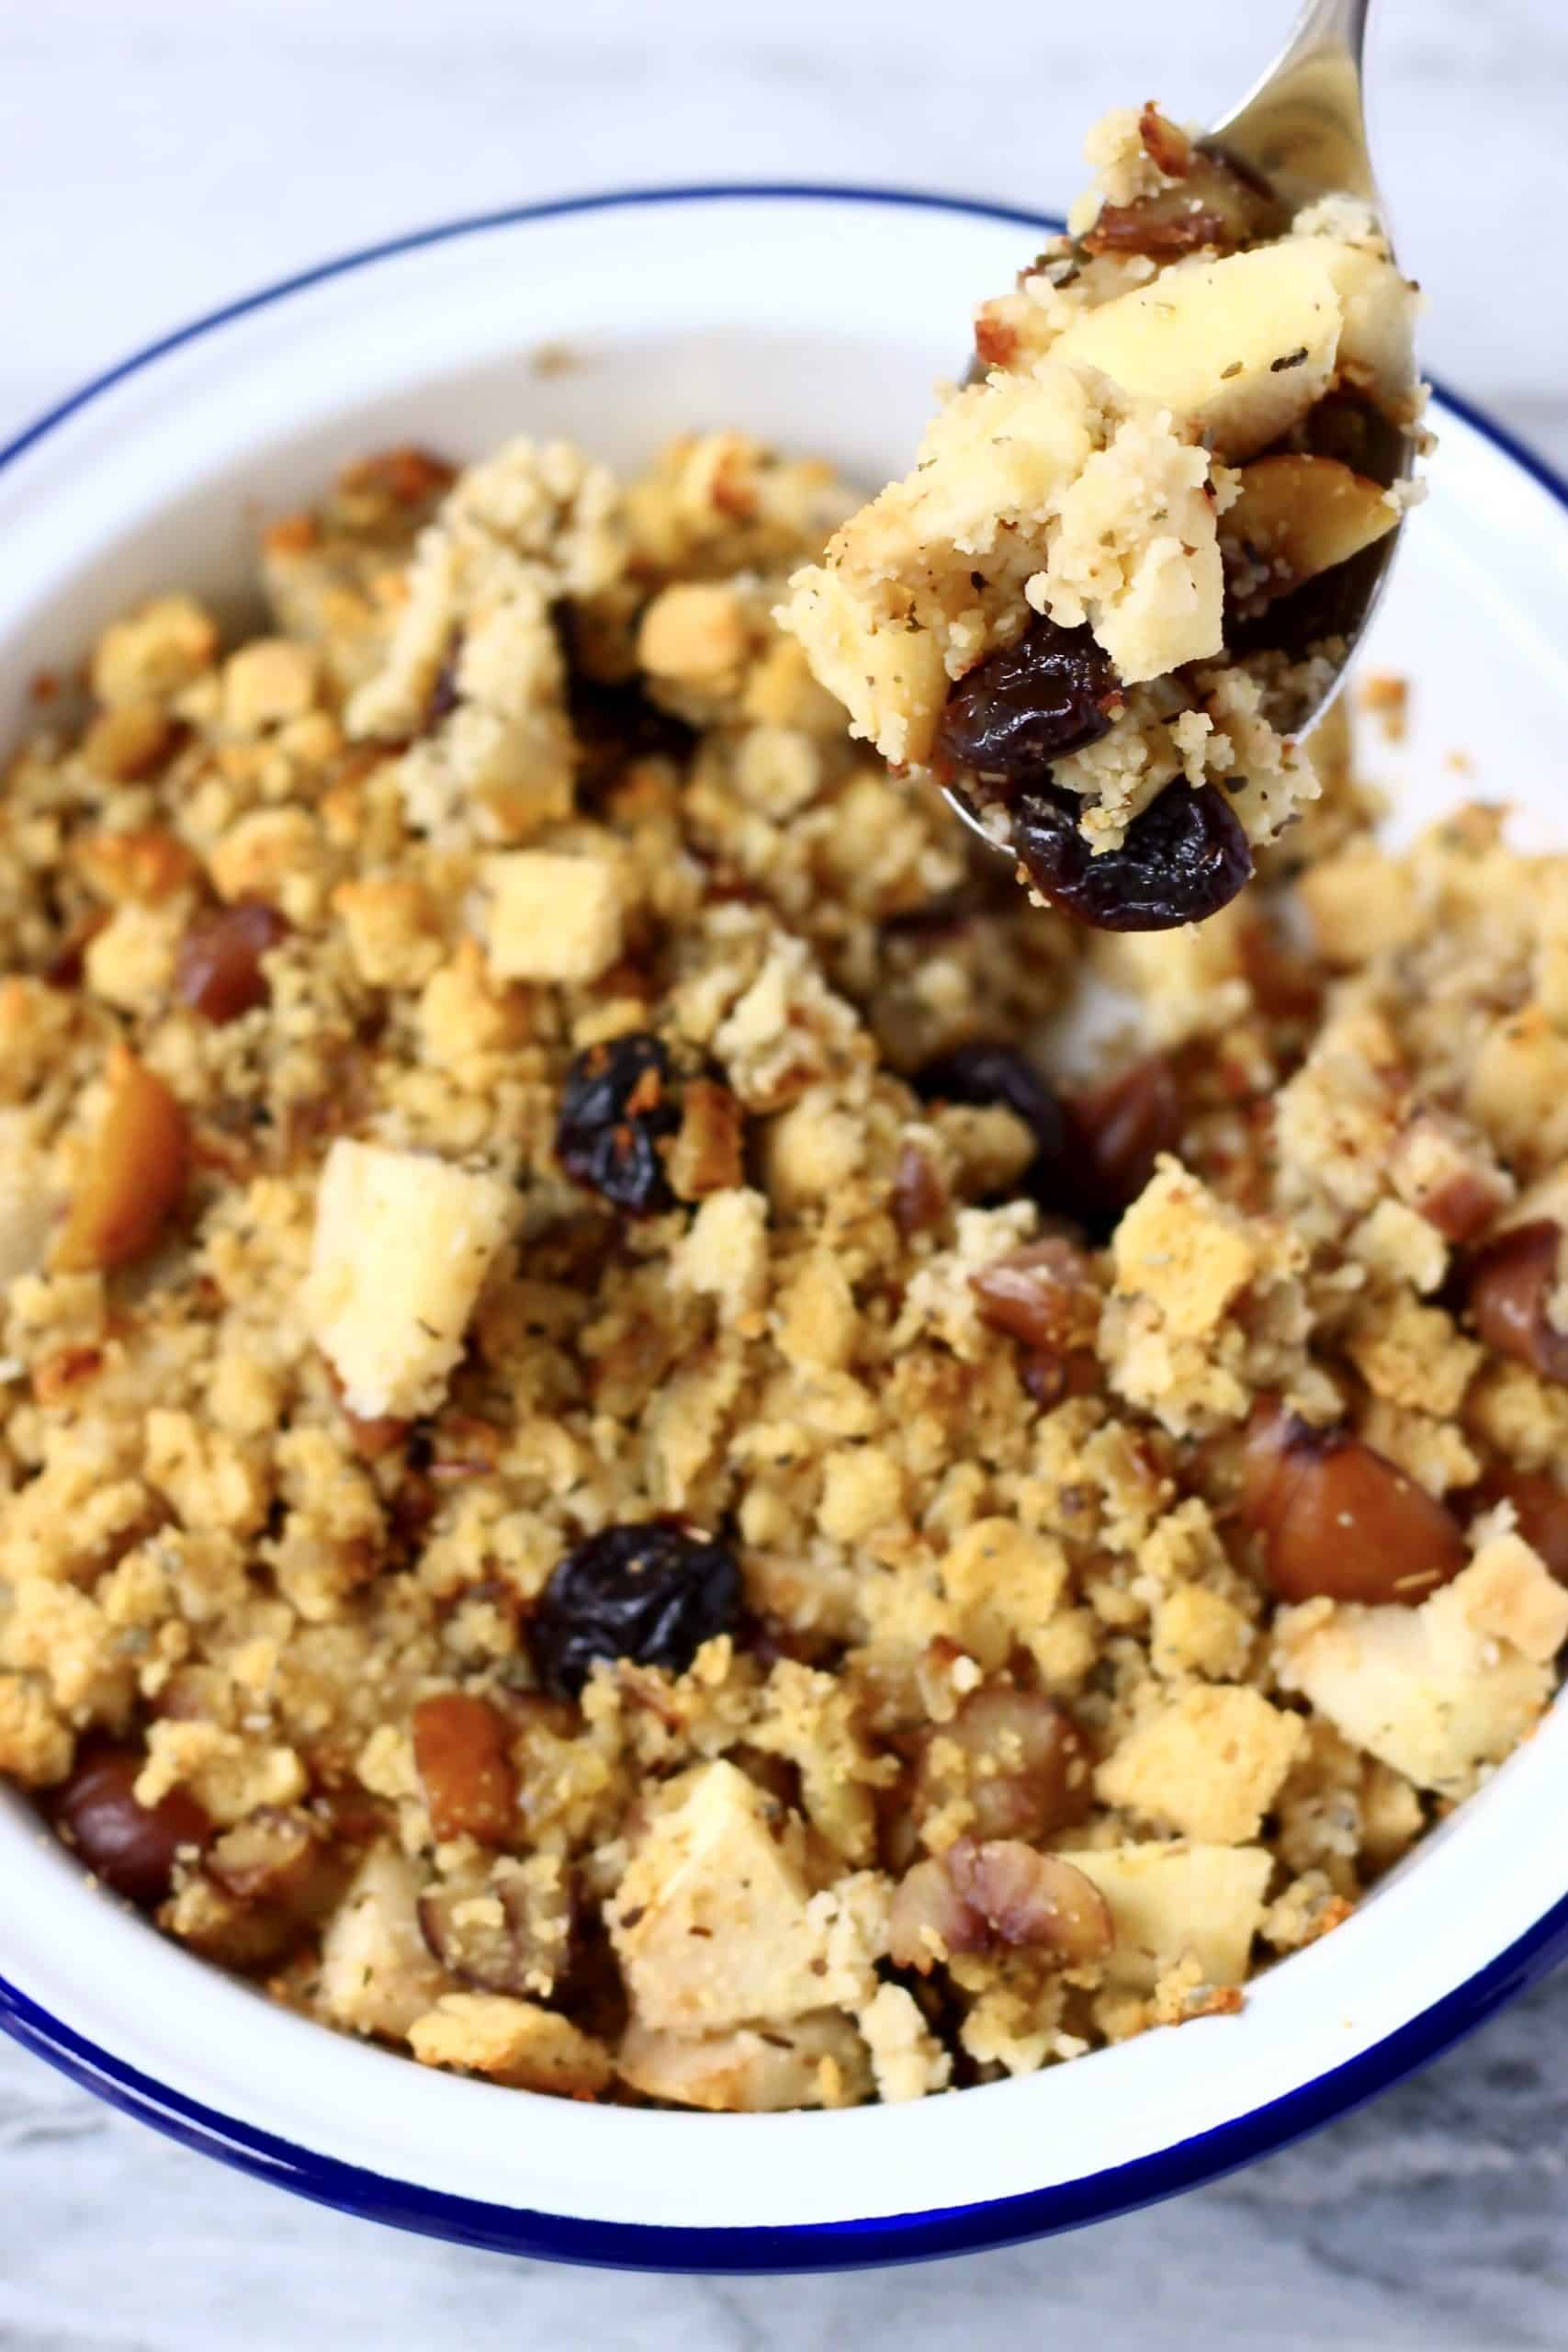 Stuffing with chestnuts, apple pieces and dried cherries in a white pie dish with a blue rim with a silver spoon holding up a mouthful of stuffing